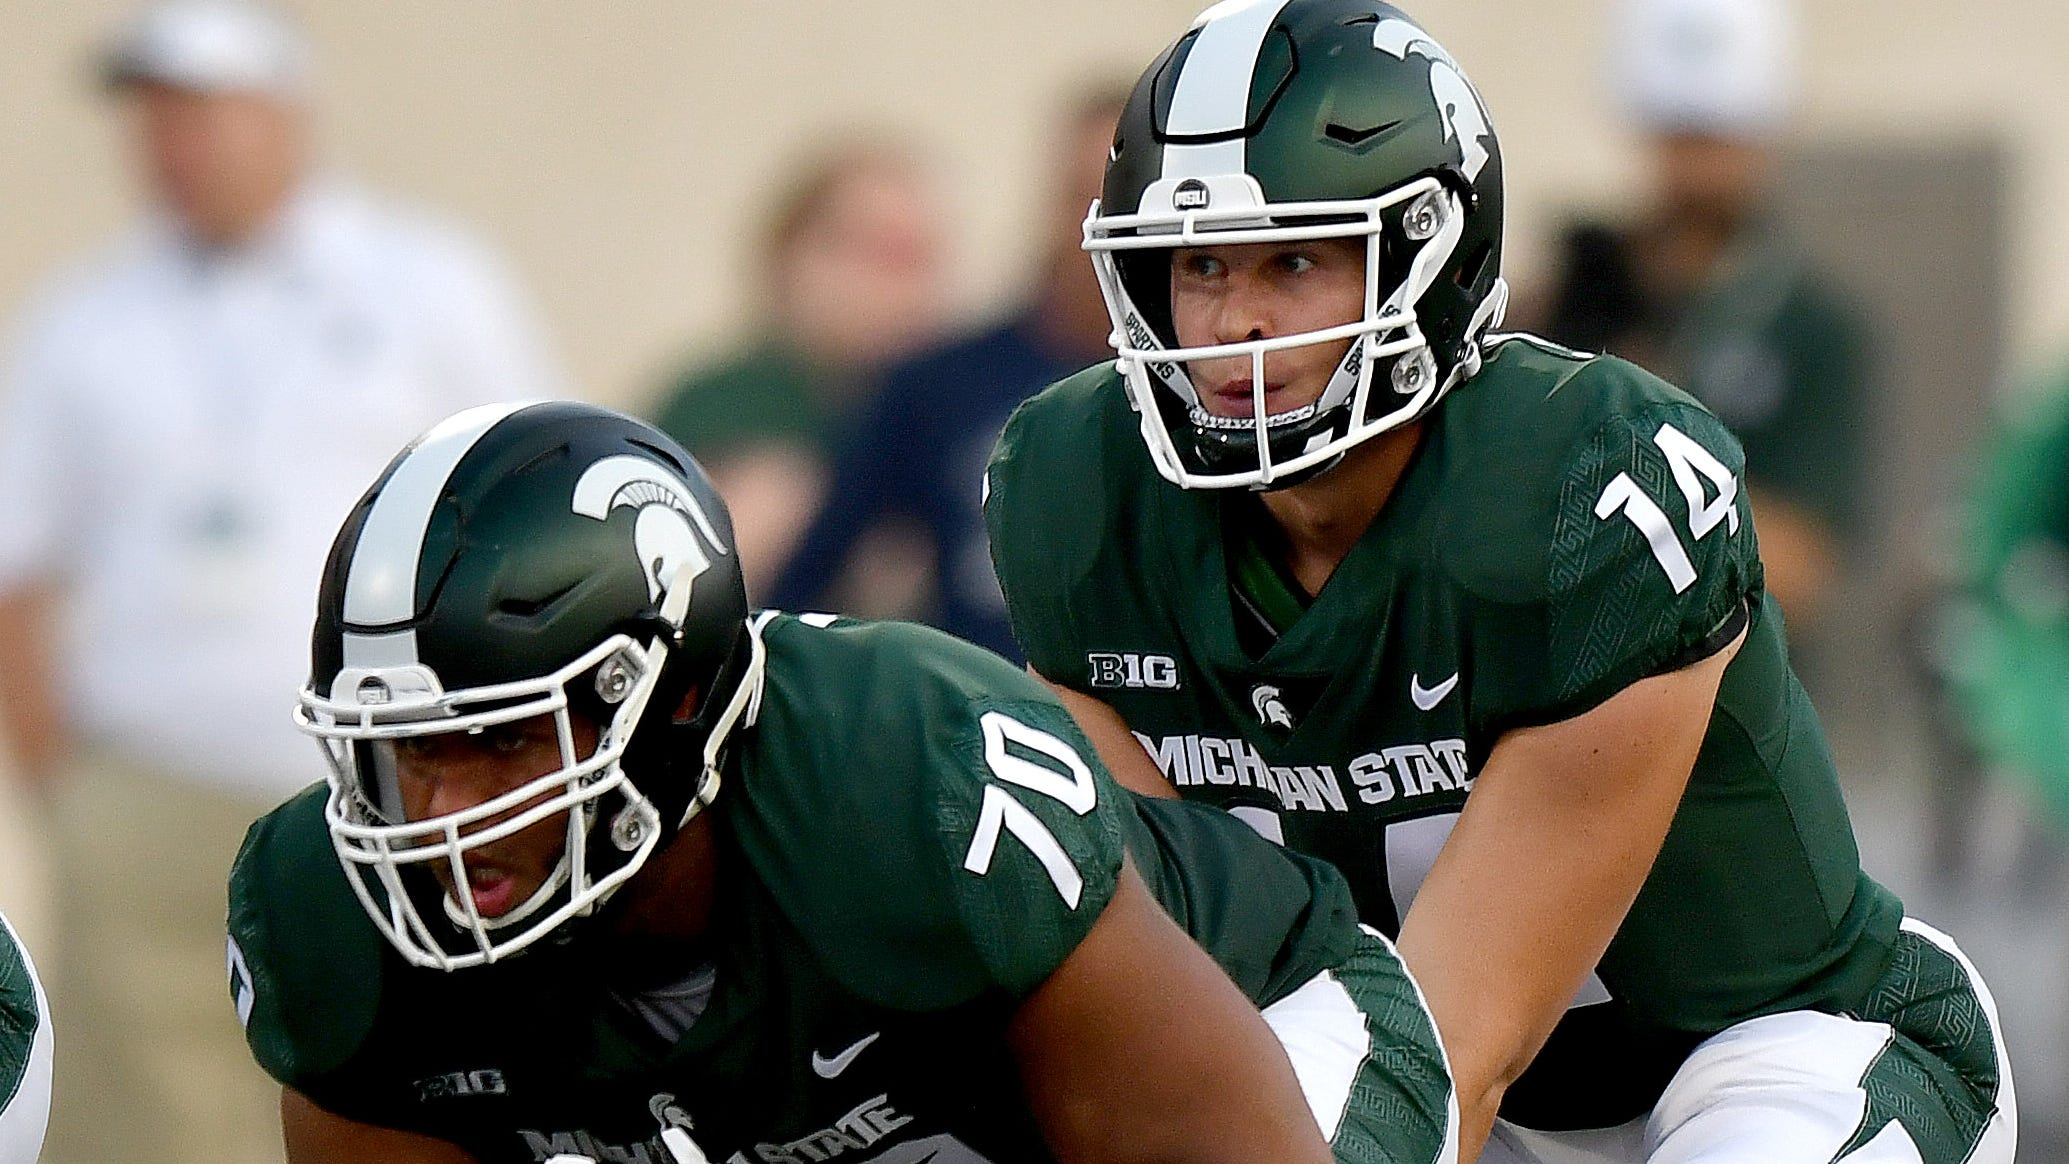 MSU mailbag: Time to panic about basketball recruiting?